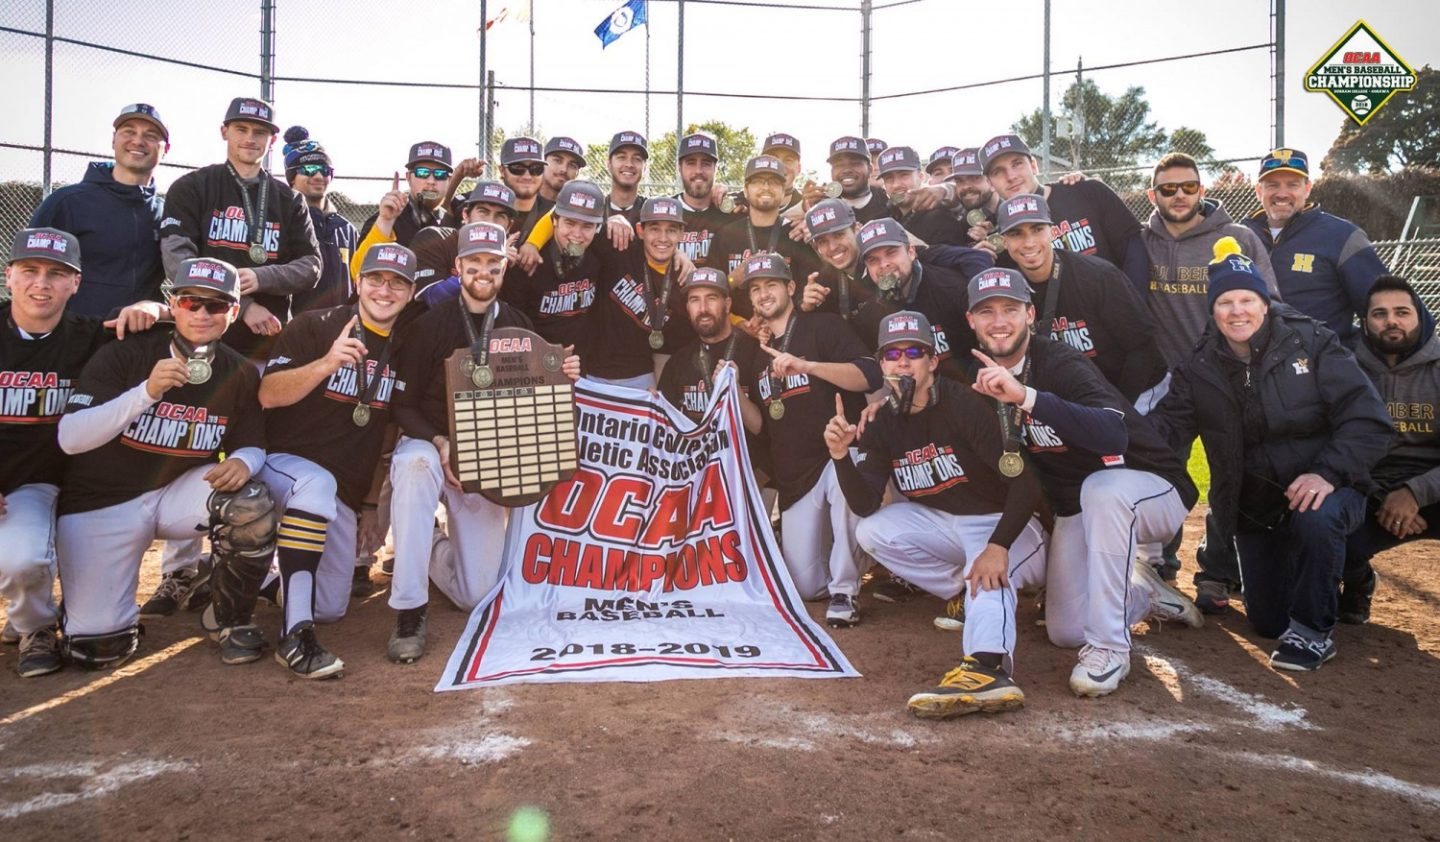 Humber Hosts Costly National College Baseball Championship